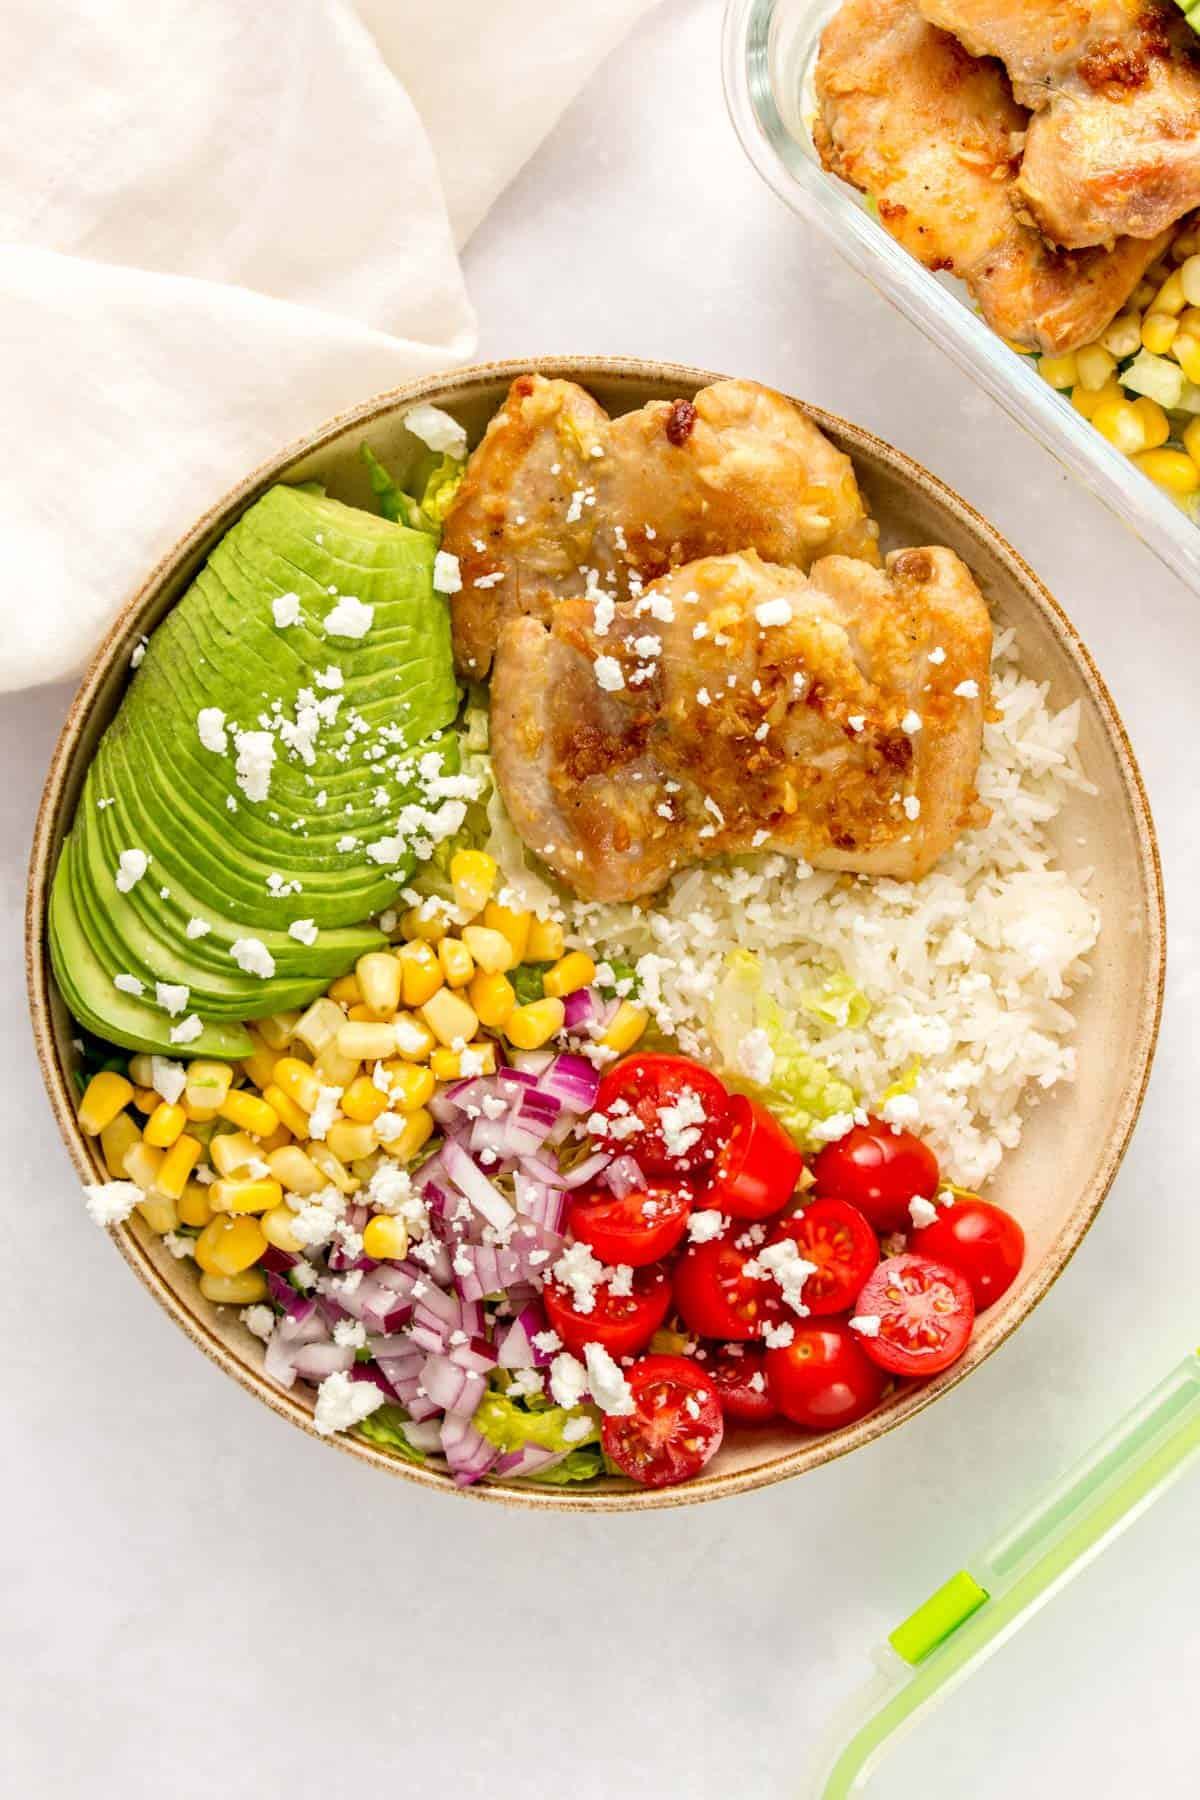 A plate with rice, lettuce, tomatoes, red onion, corn, avocado, and garlic butter chicken thighs.